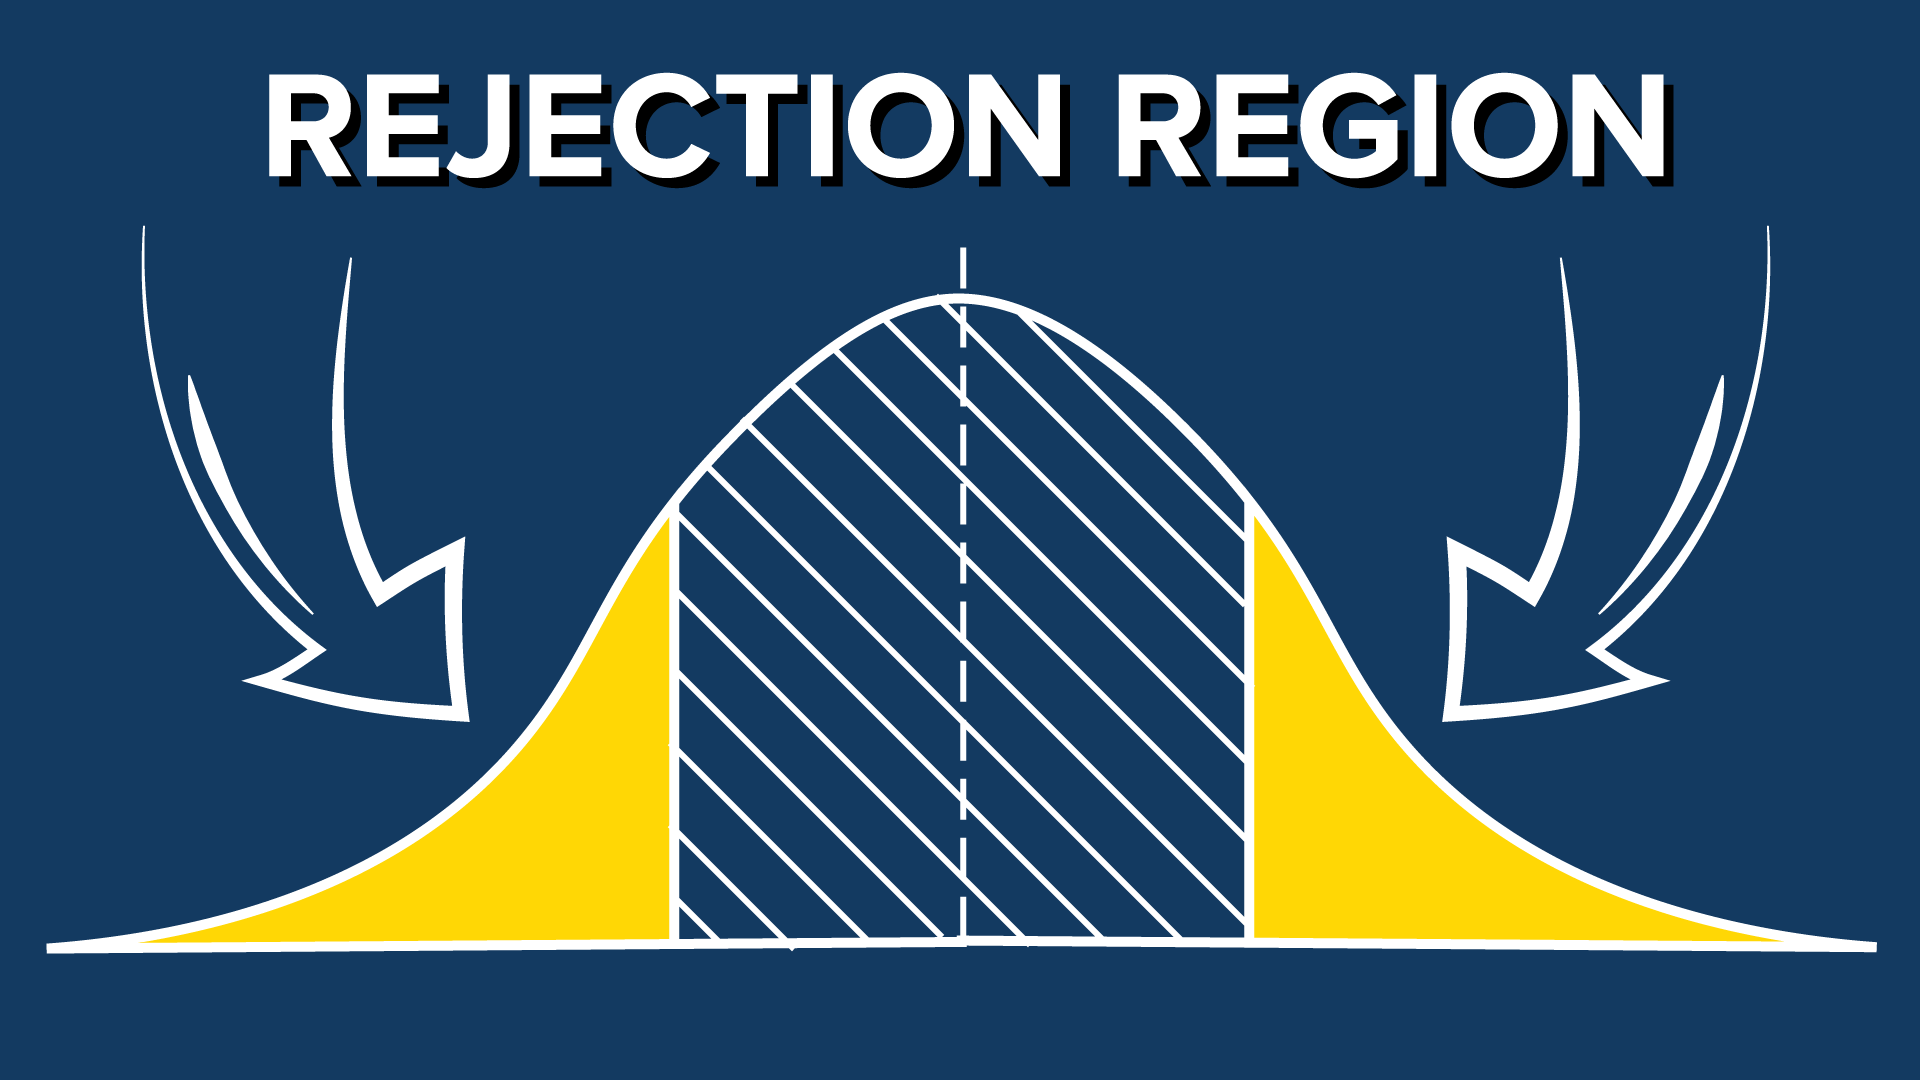 REJECTION-REGION1